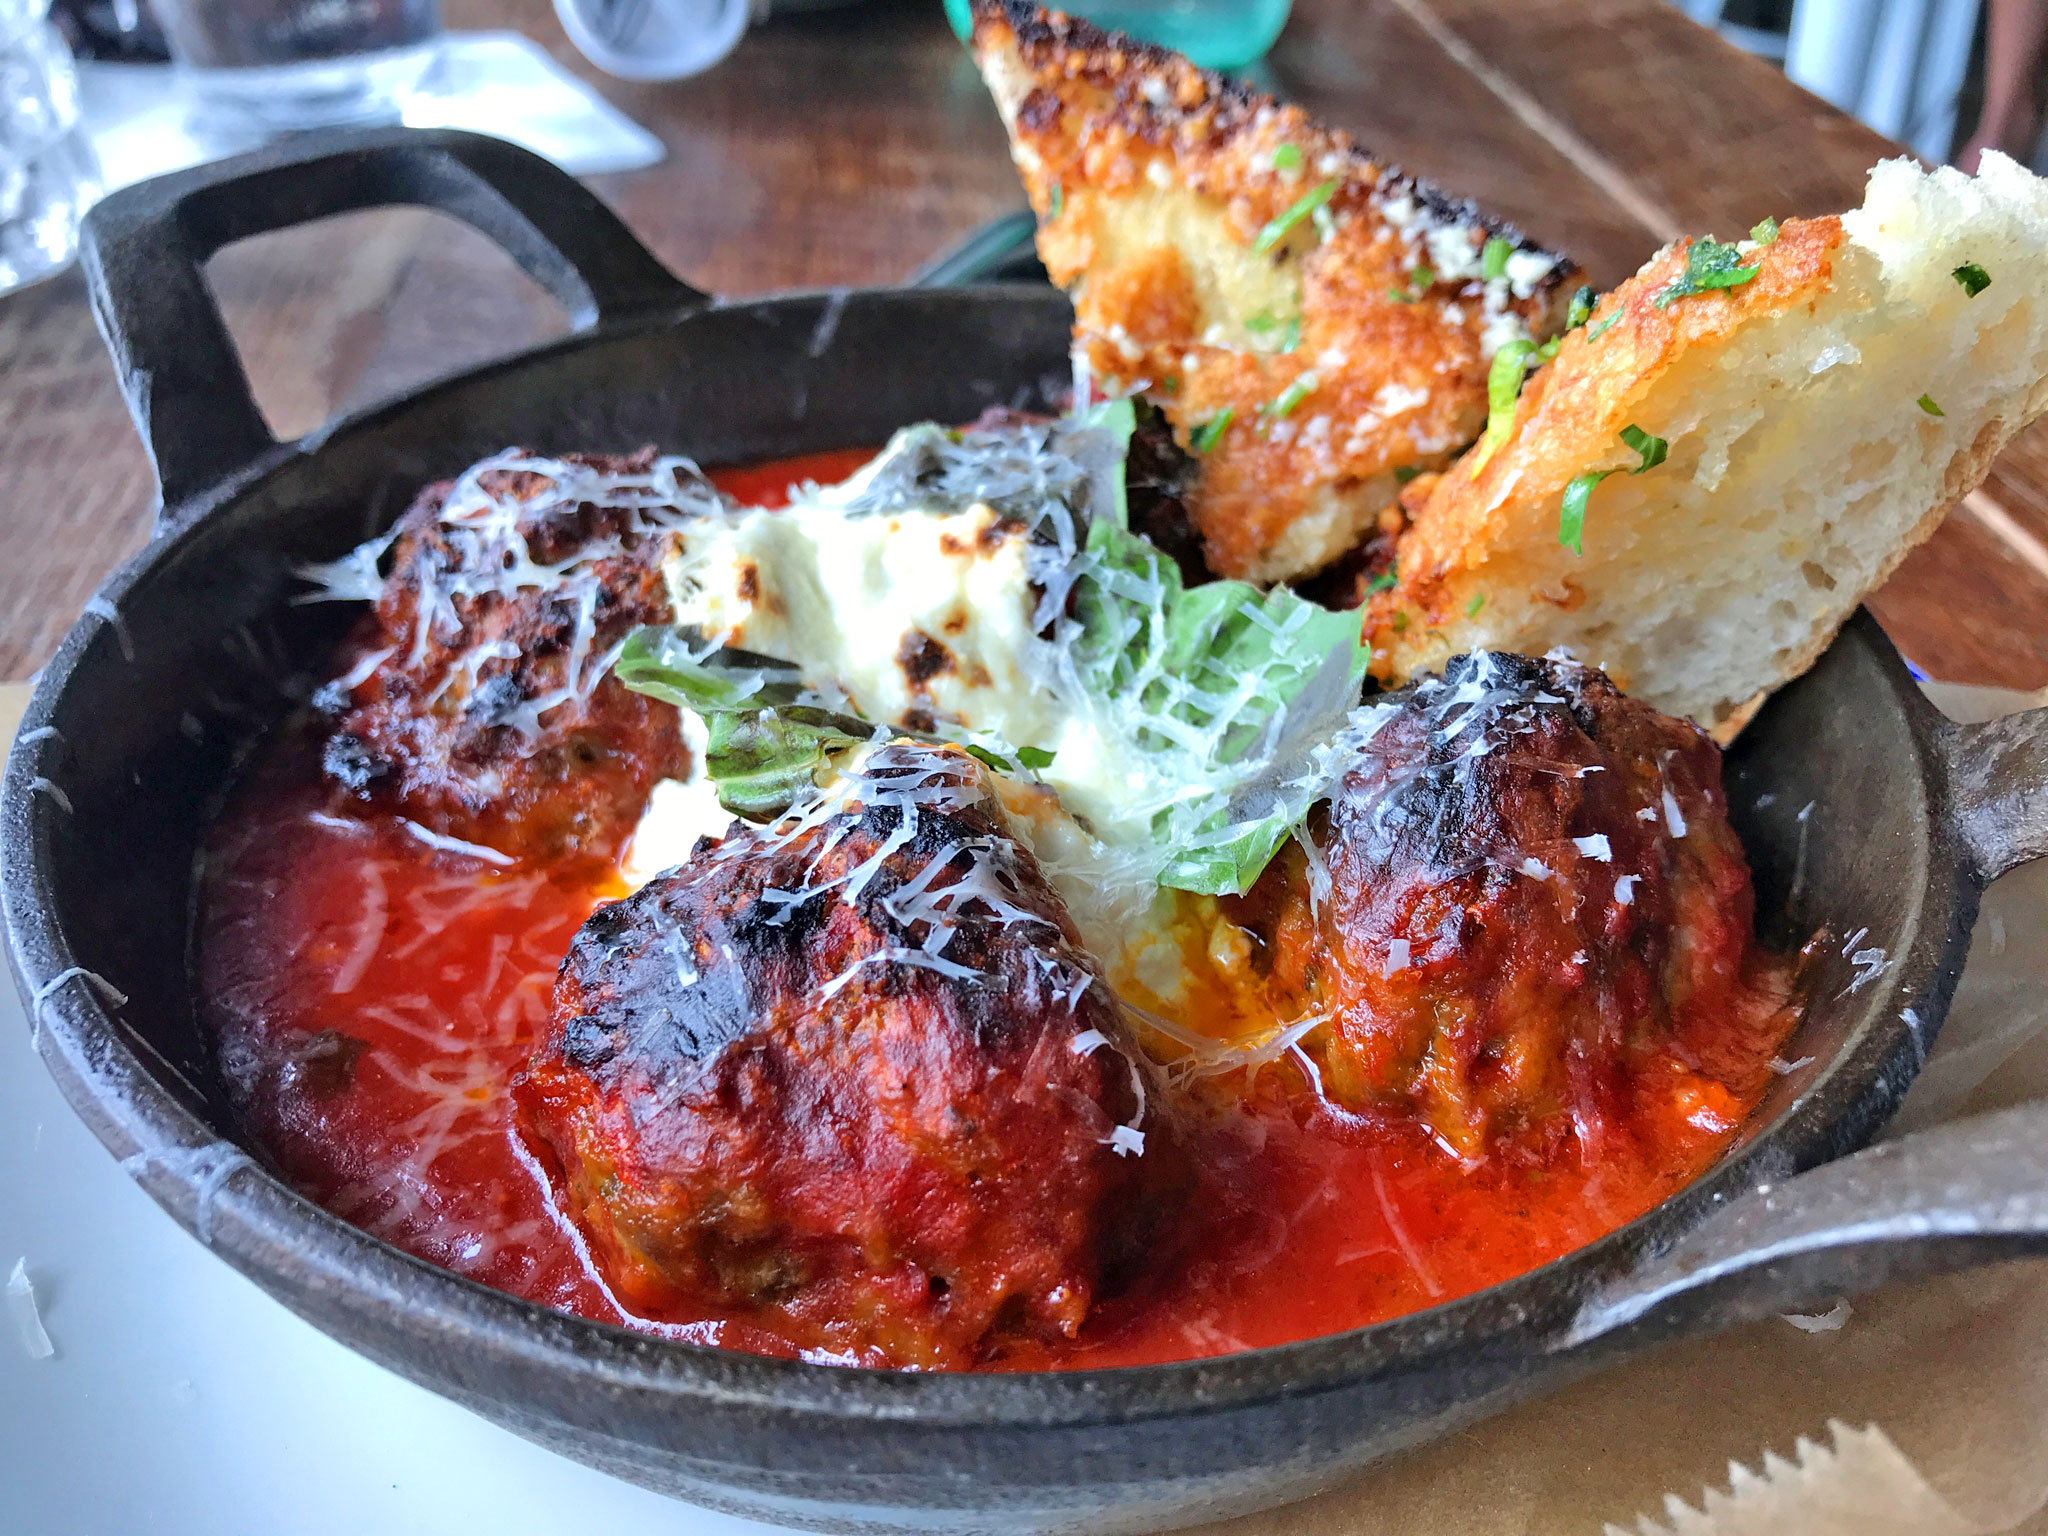 Best Meatballs in St. Petersburg FL 2019